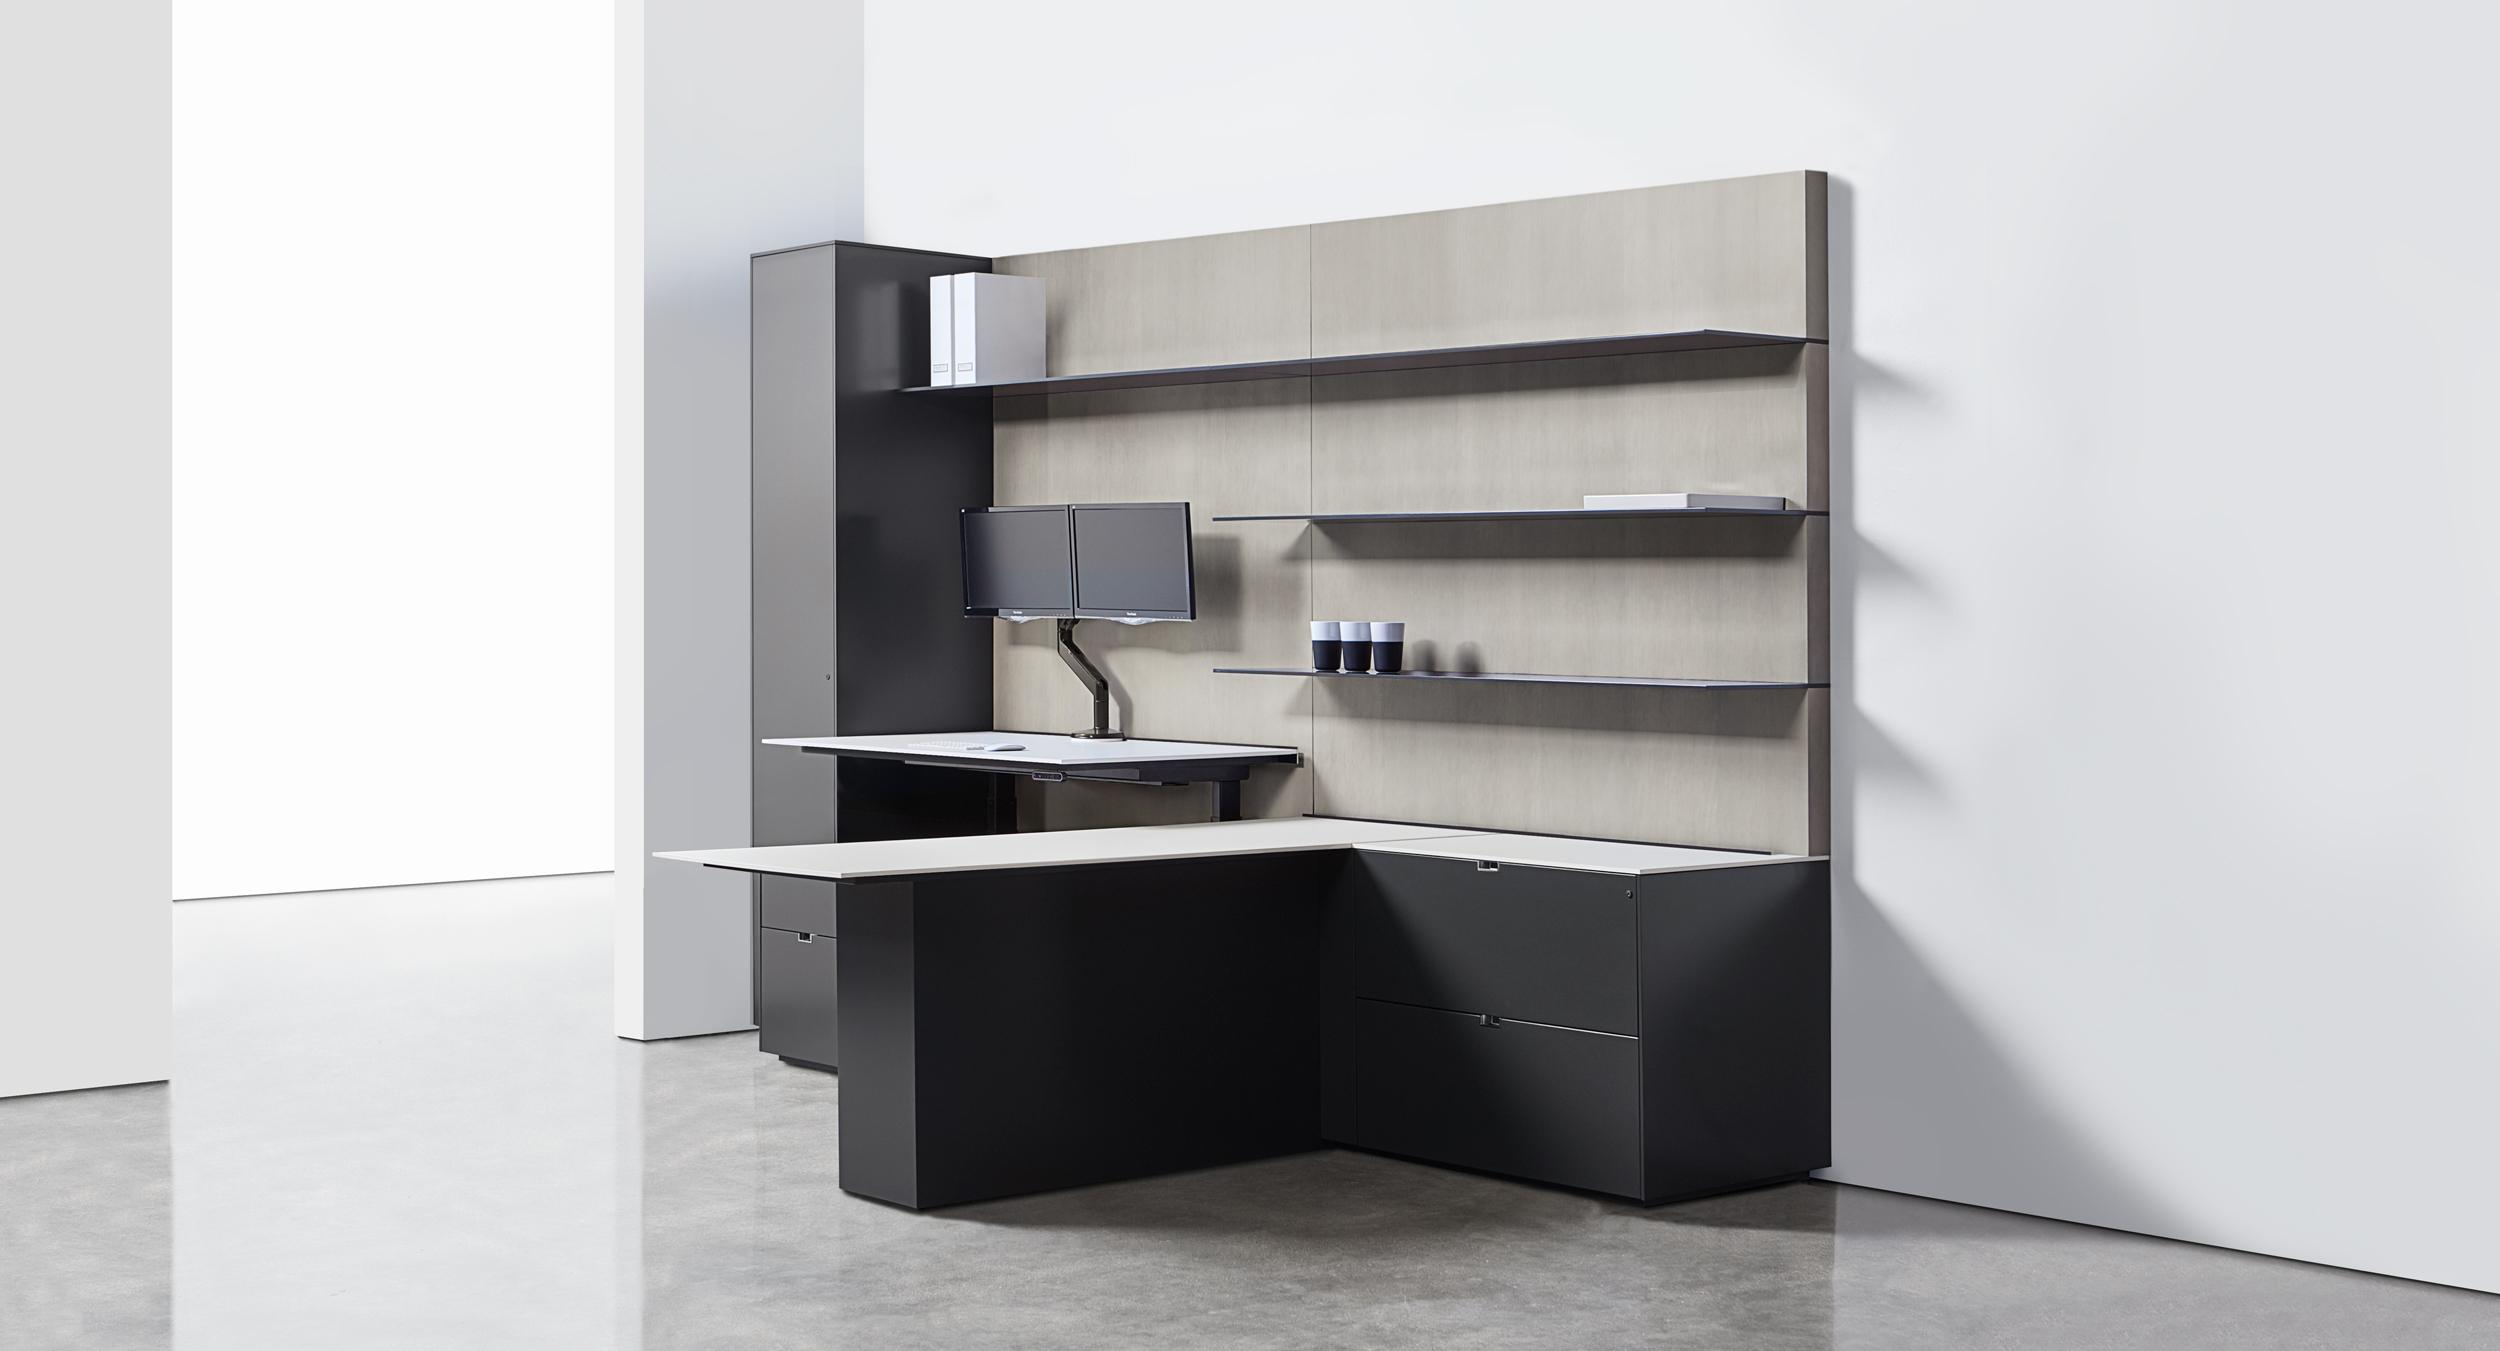 Adjustable-height surfaces combine with clean lines for integrated functionality.